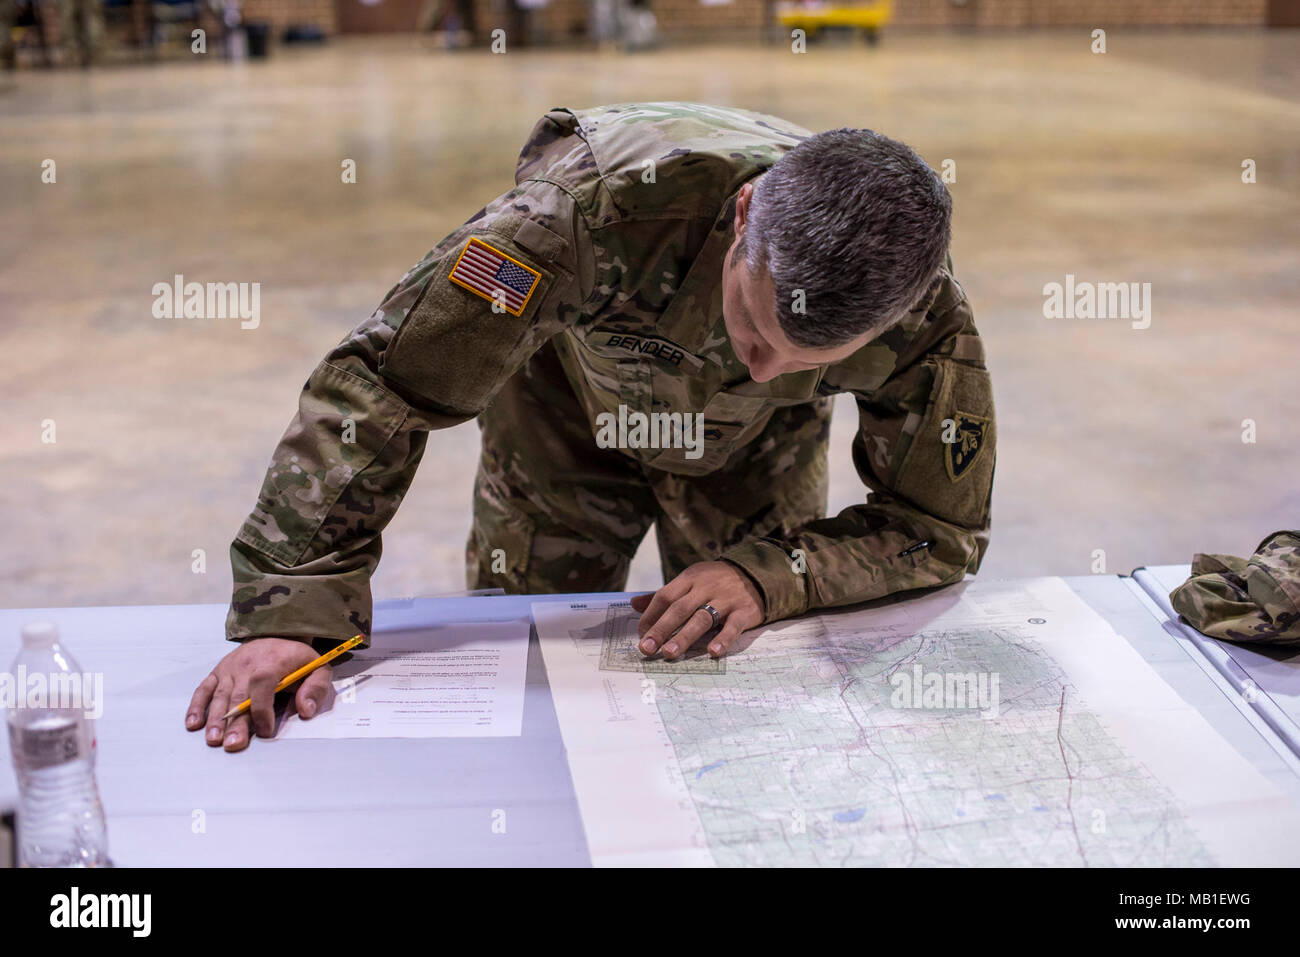 Army Map Reading on